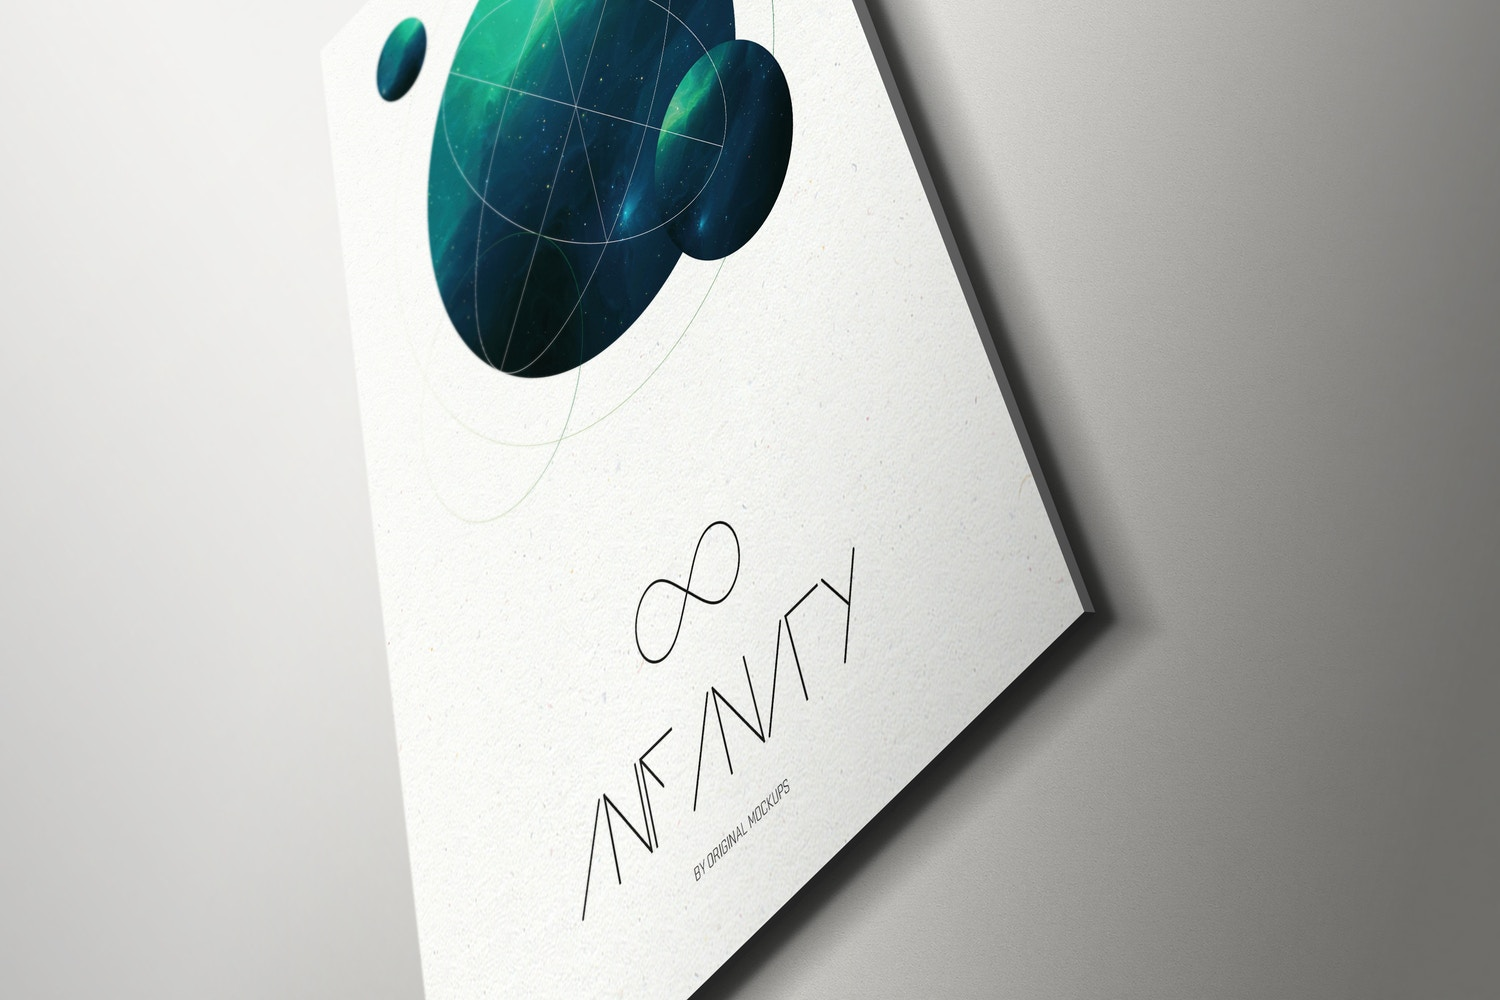 Canvas Mockup 2 by Original Mockups on Original Mockups